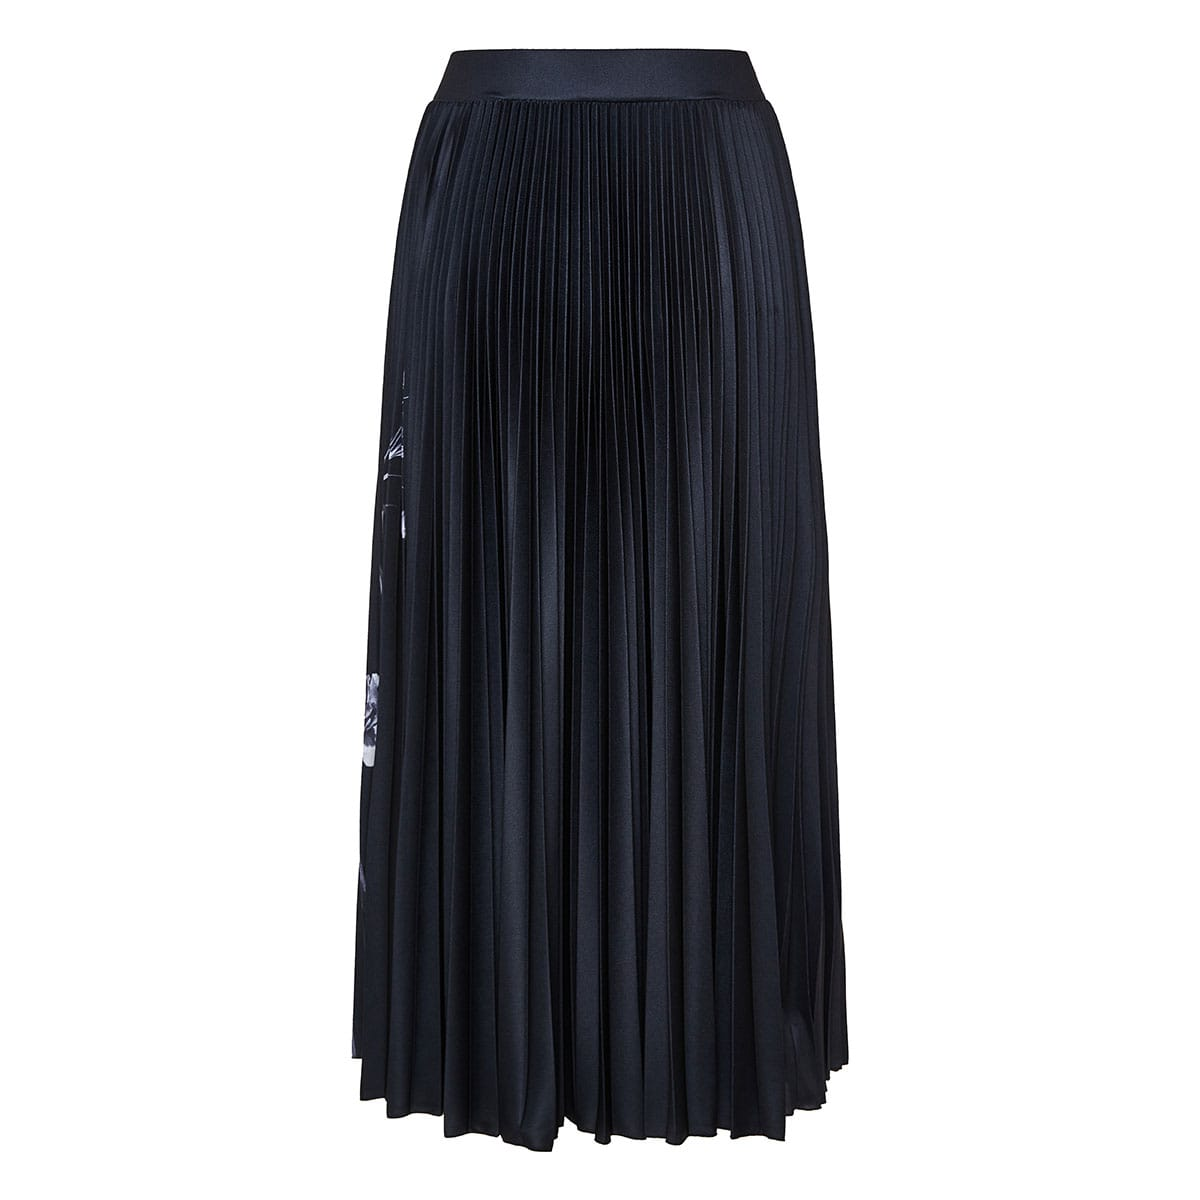 Flowersity pleated midi skirt